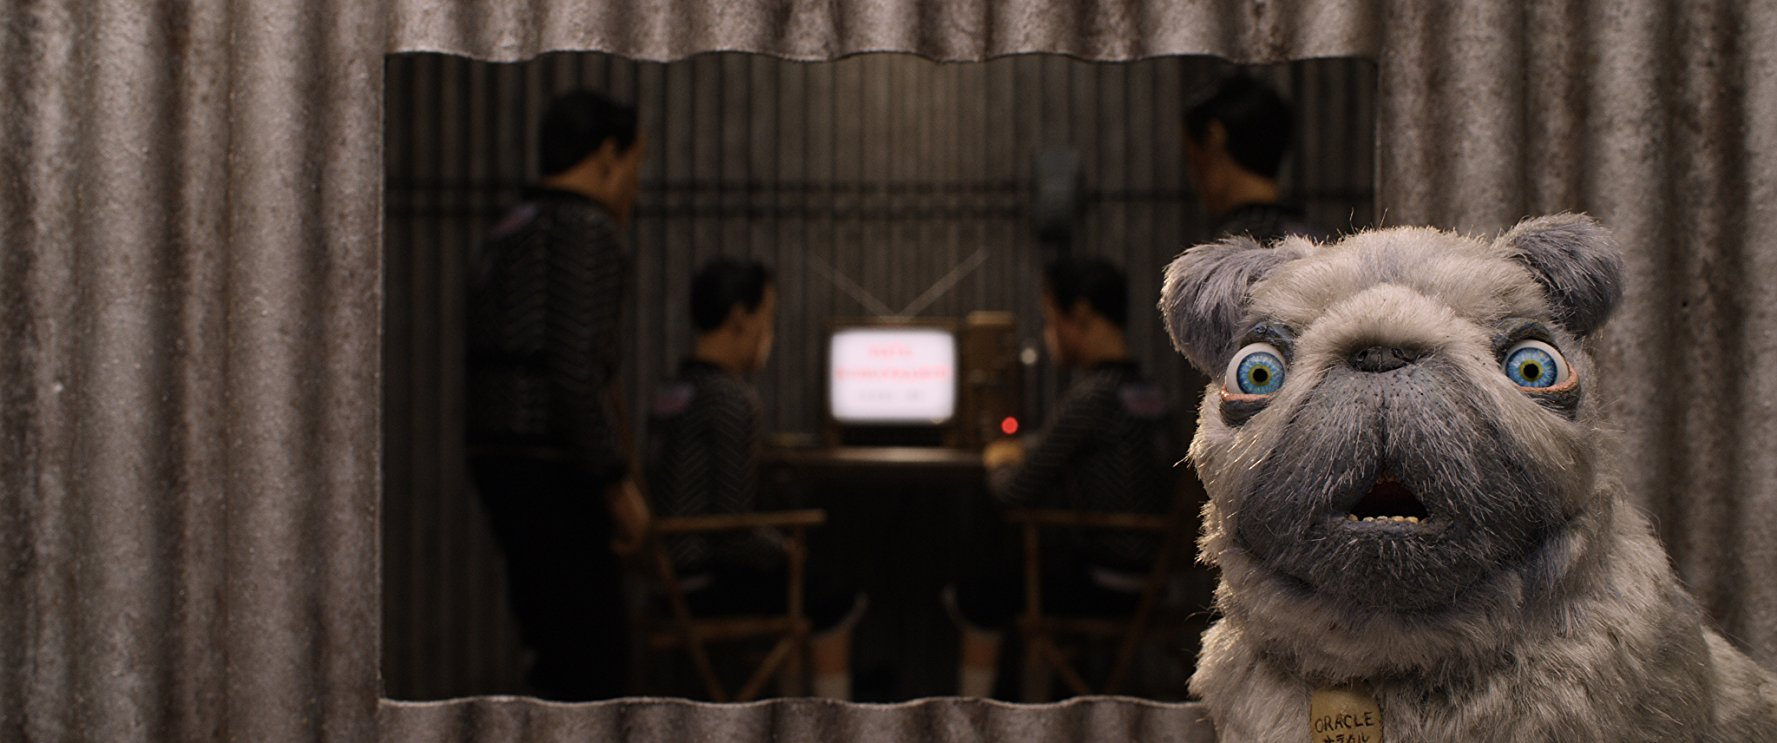 A pug voiced by Tilda Swinton is the focus of this frame, while Japanese characters are in the background.